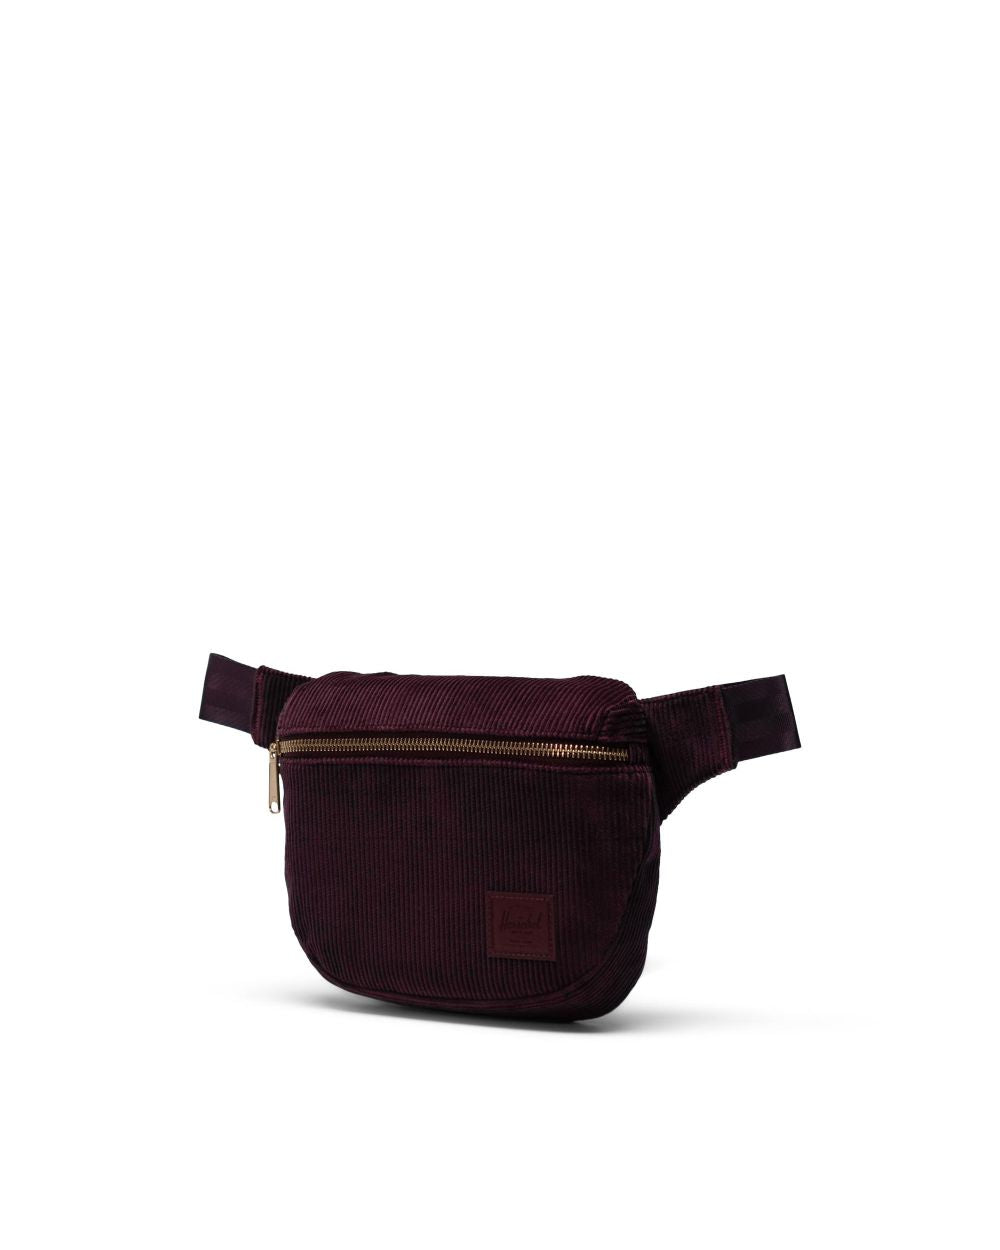 FIFTEEN HIP PACK CORDUROY - PLUM